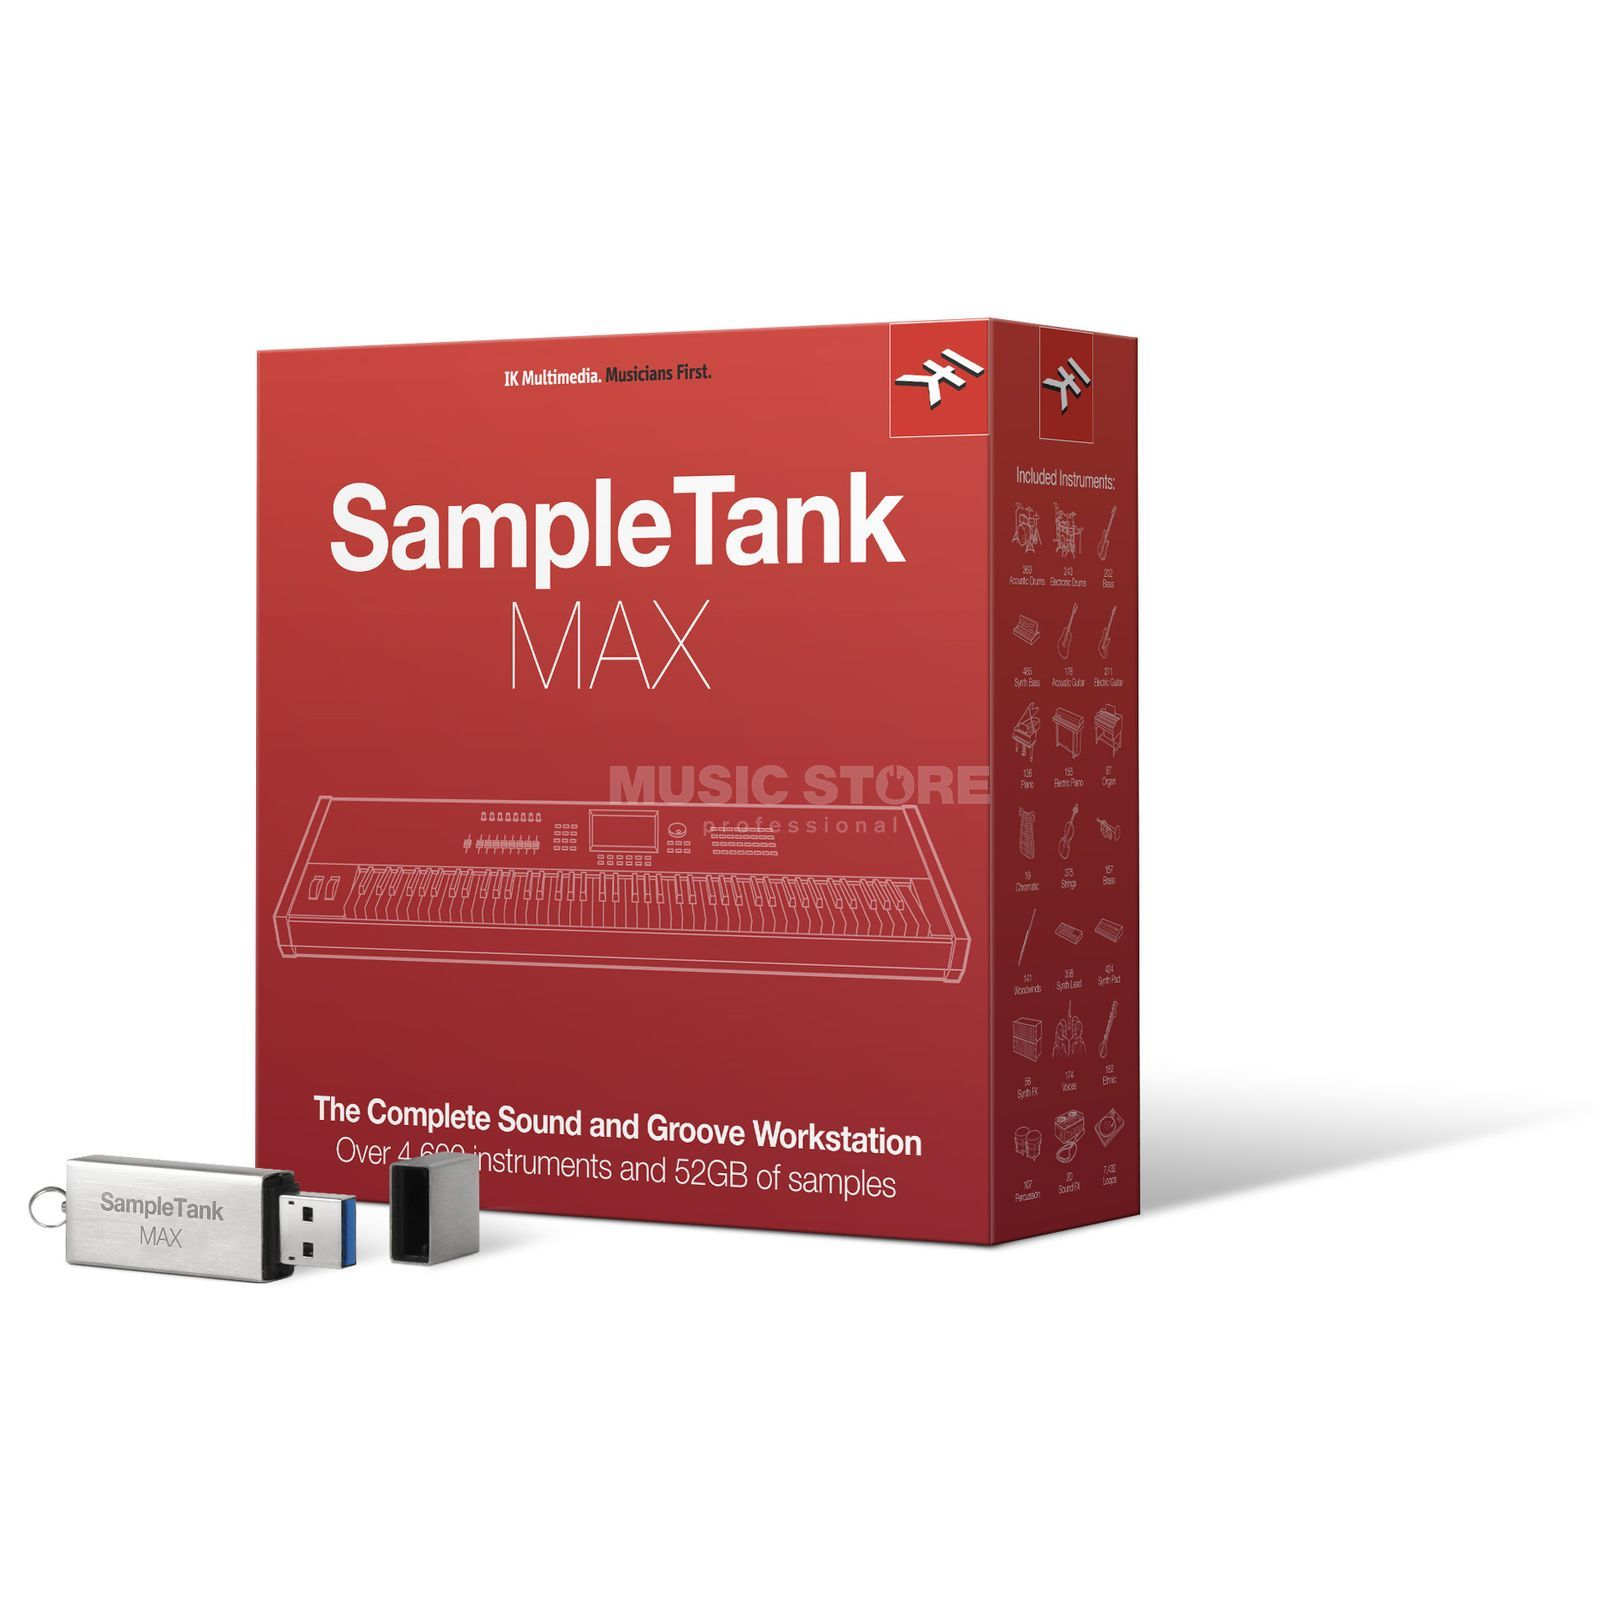 IK Multimedia Sample Tank MAX Product Image